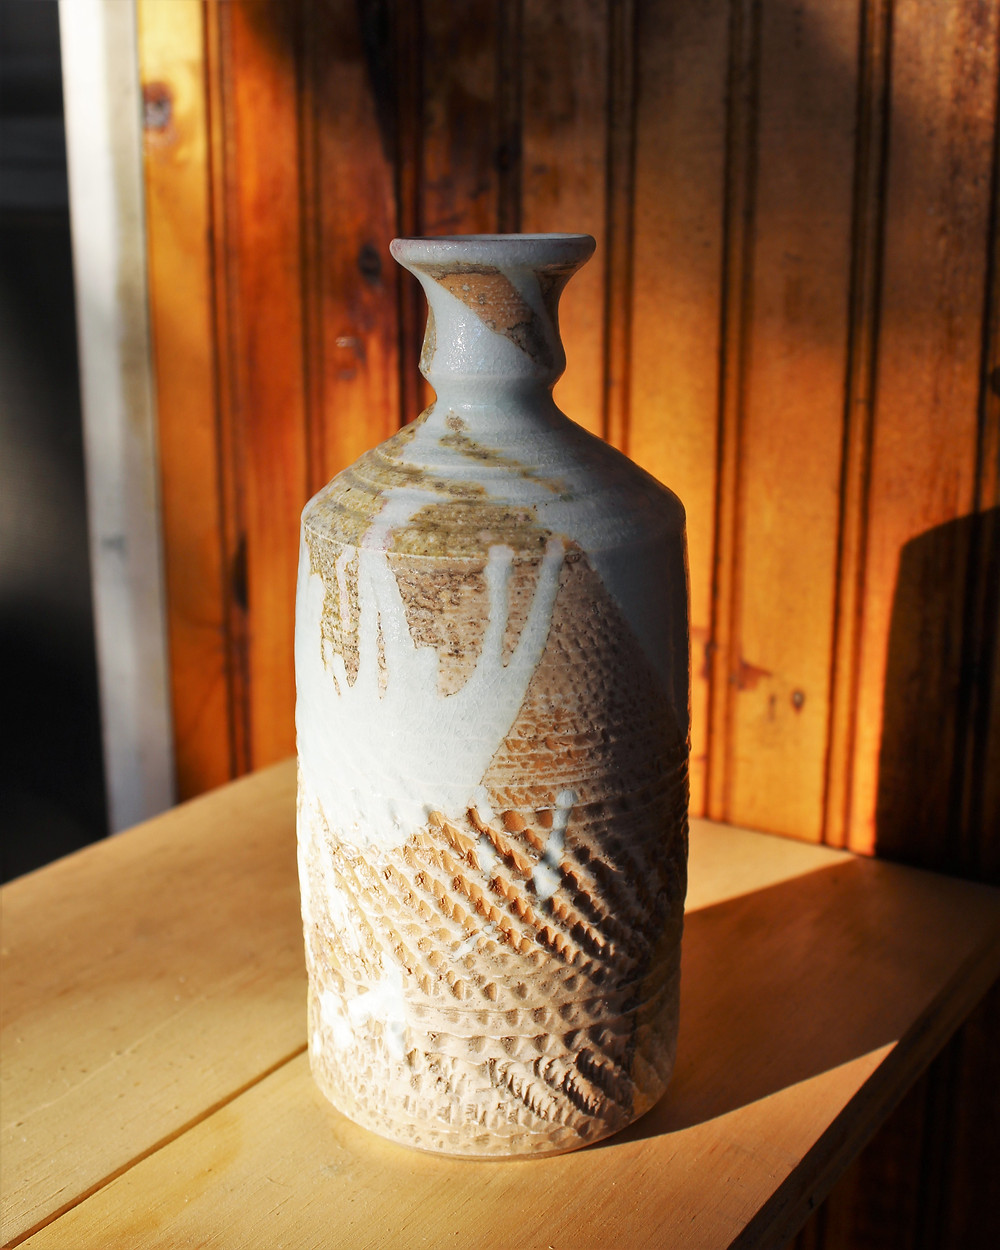 wood fired ceramic pottery porcelain with glaze